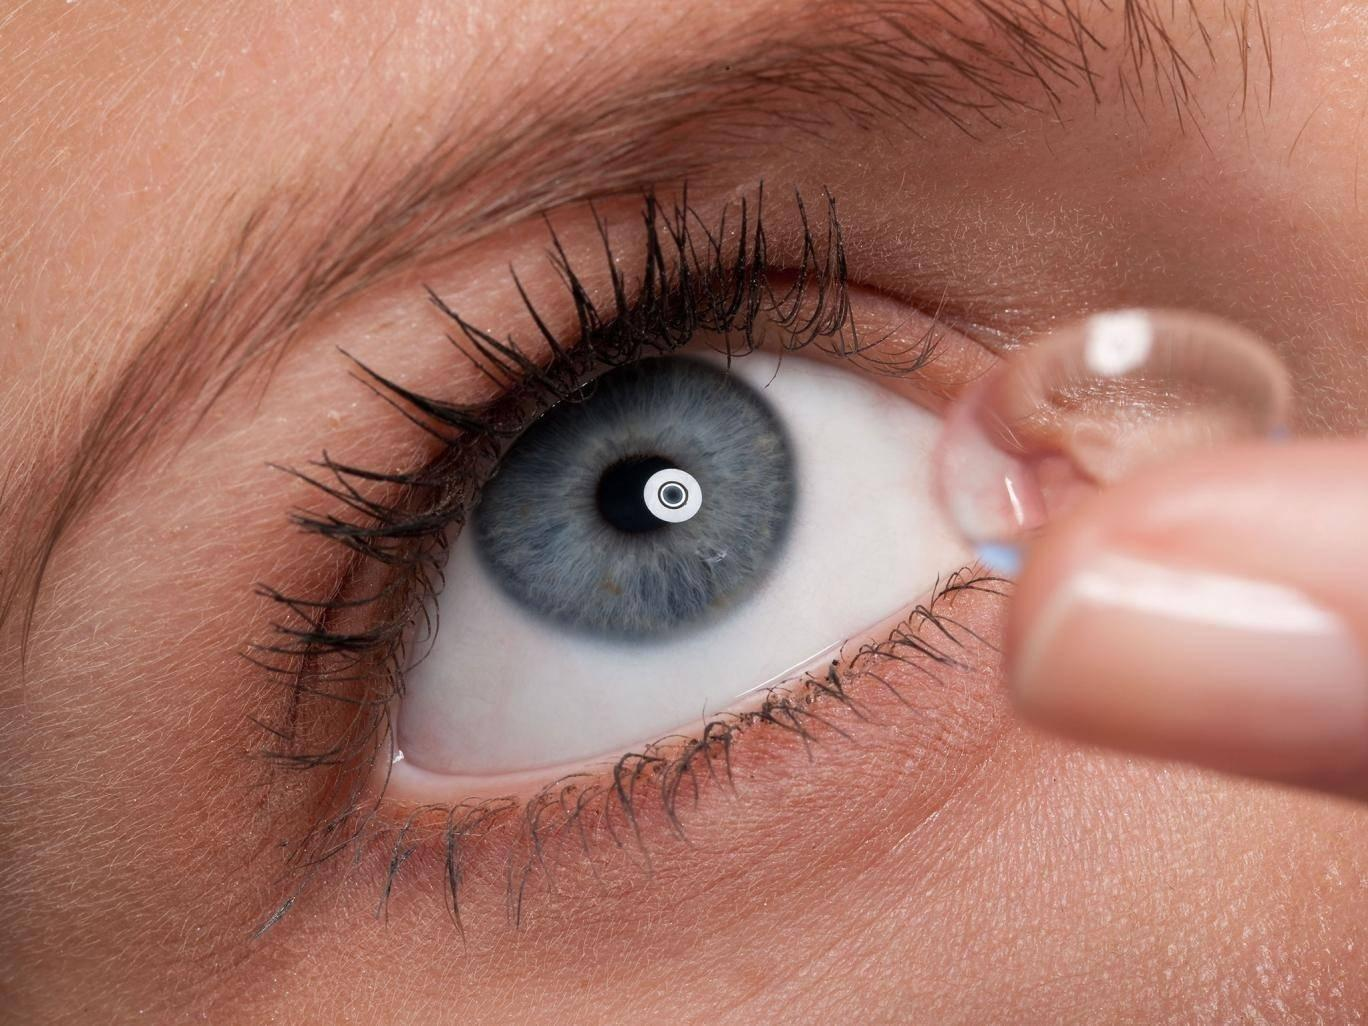 Researchers develop contact lens that tells people with diabetes when they need to take medication